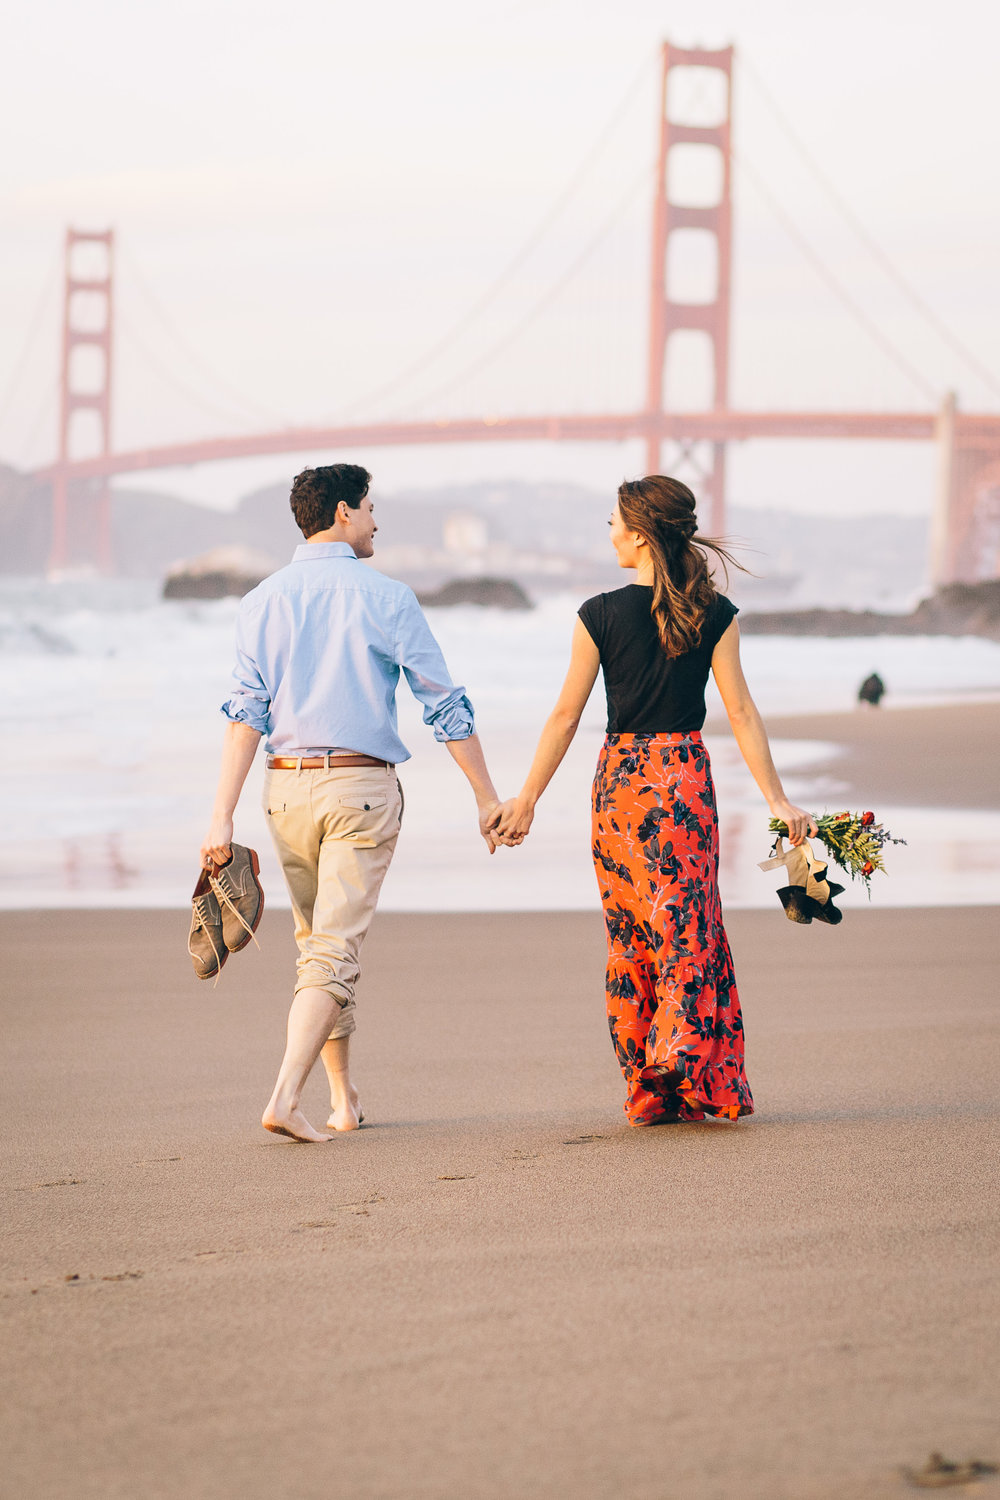 Best Engagement Photo Locations in San Francisco - Baker Beach Engagement Photos by JBJ Pictures (2).jpg